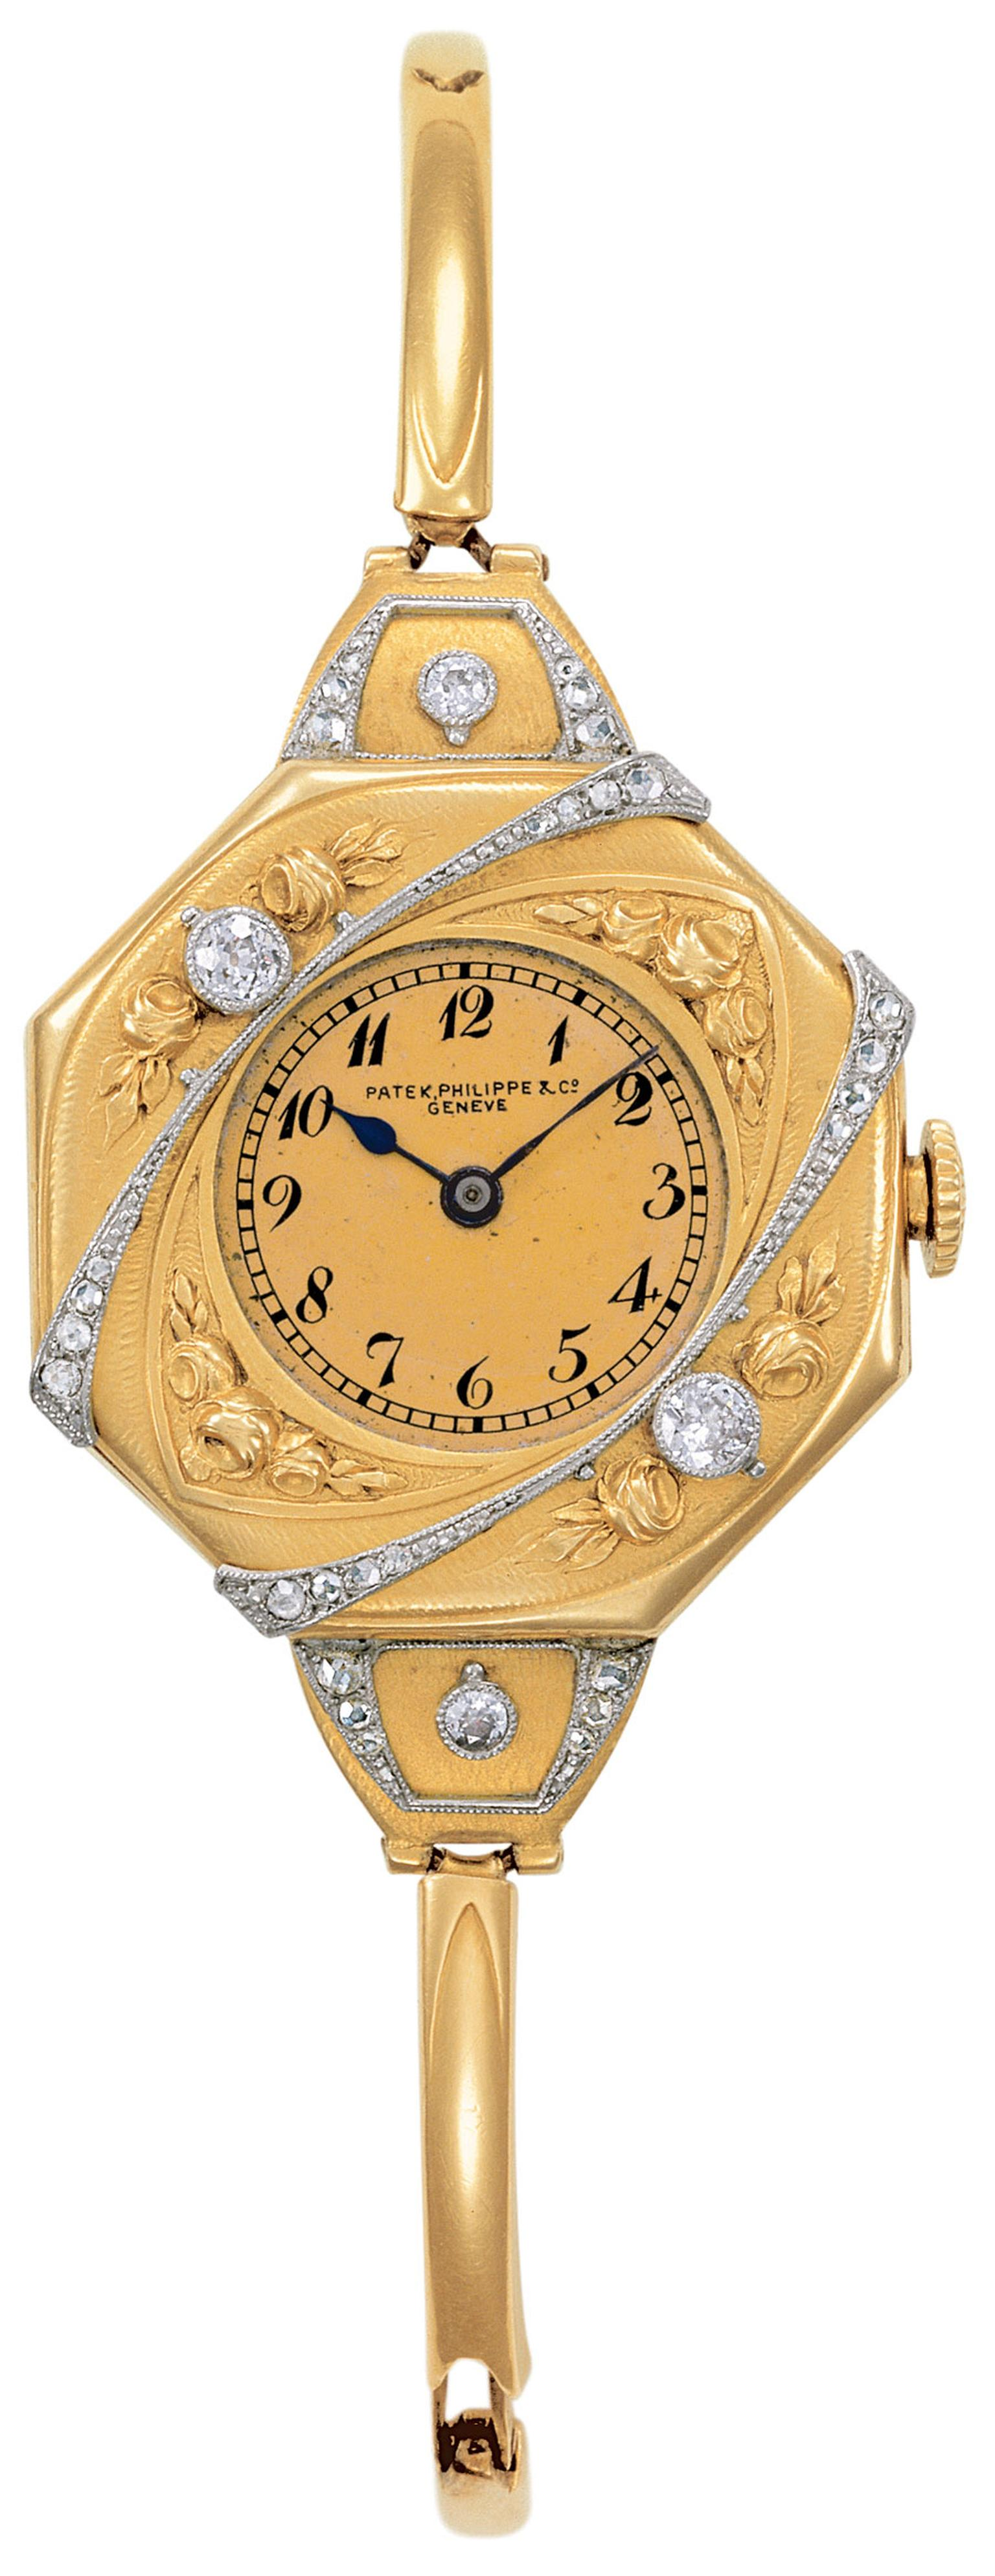 Patek-Philippe-P1202_a_200_collection-1910-15.jpg